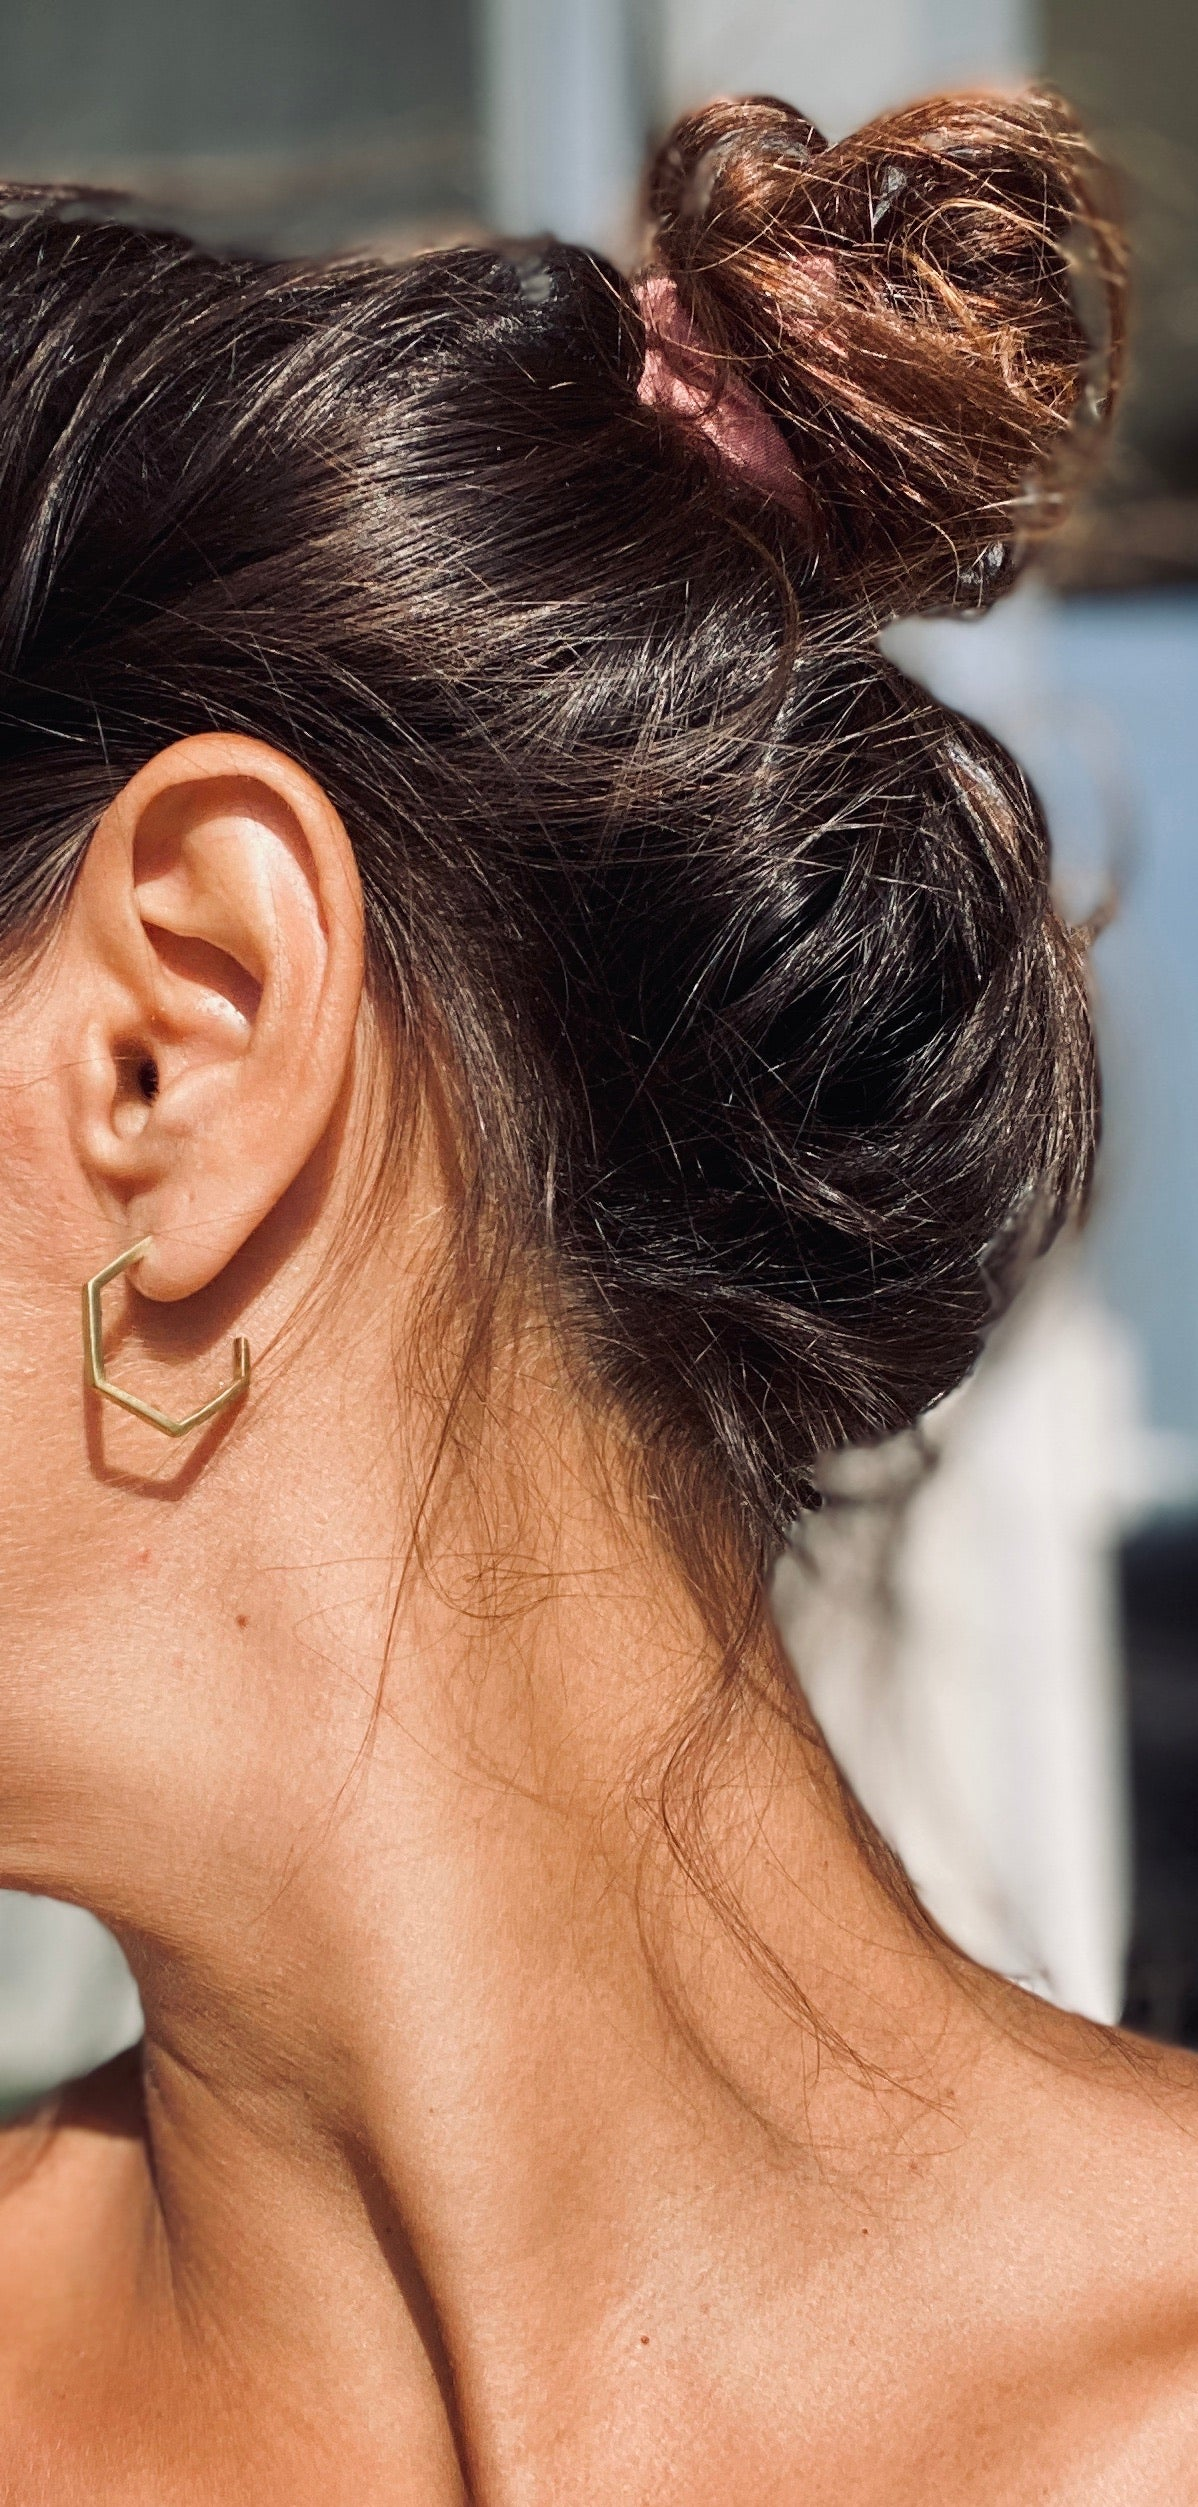 SARA Ohrring | Earring Gold - The Santai Collection